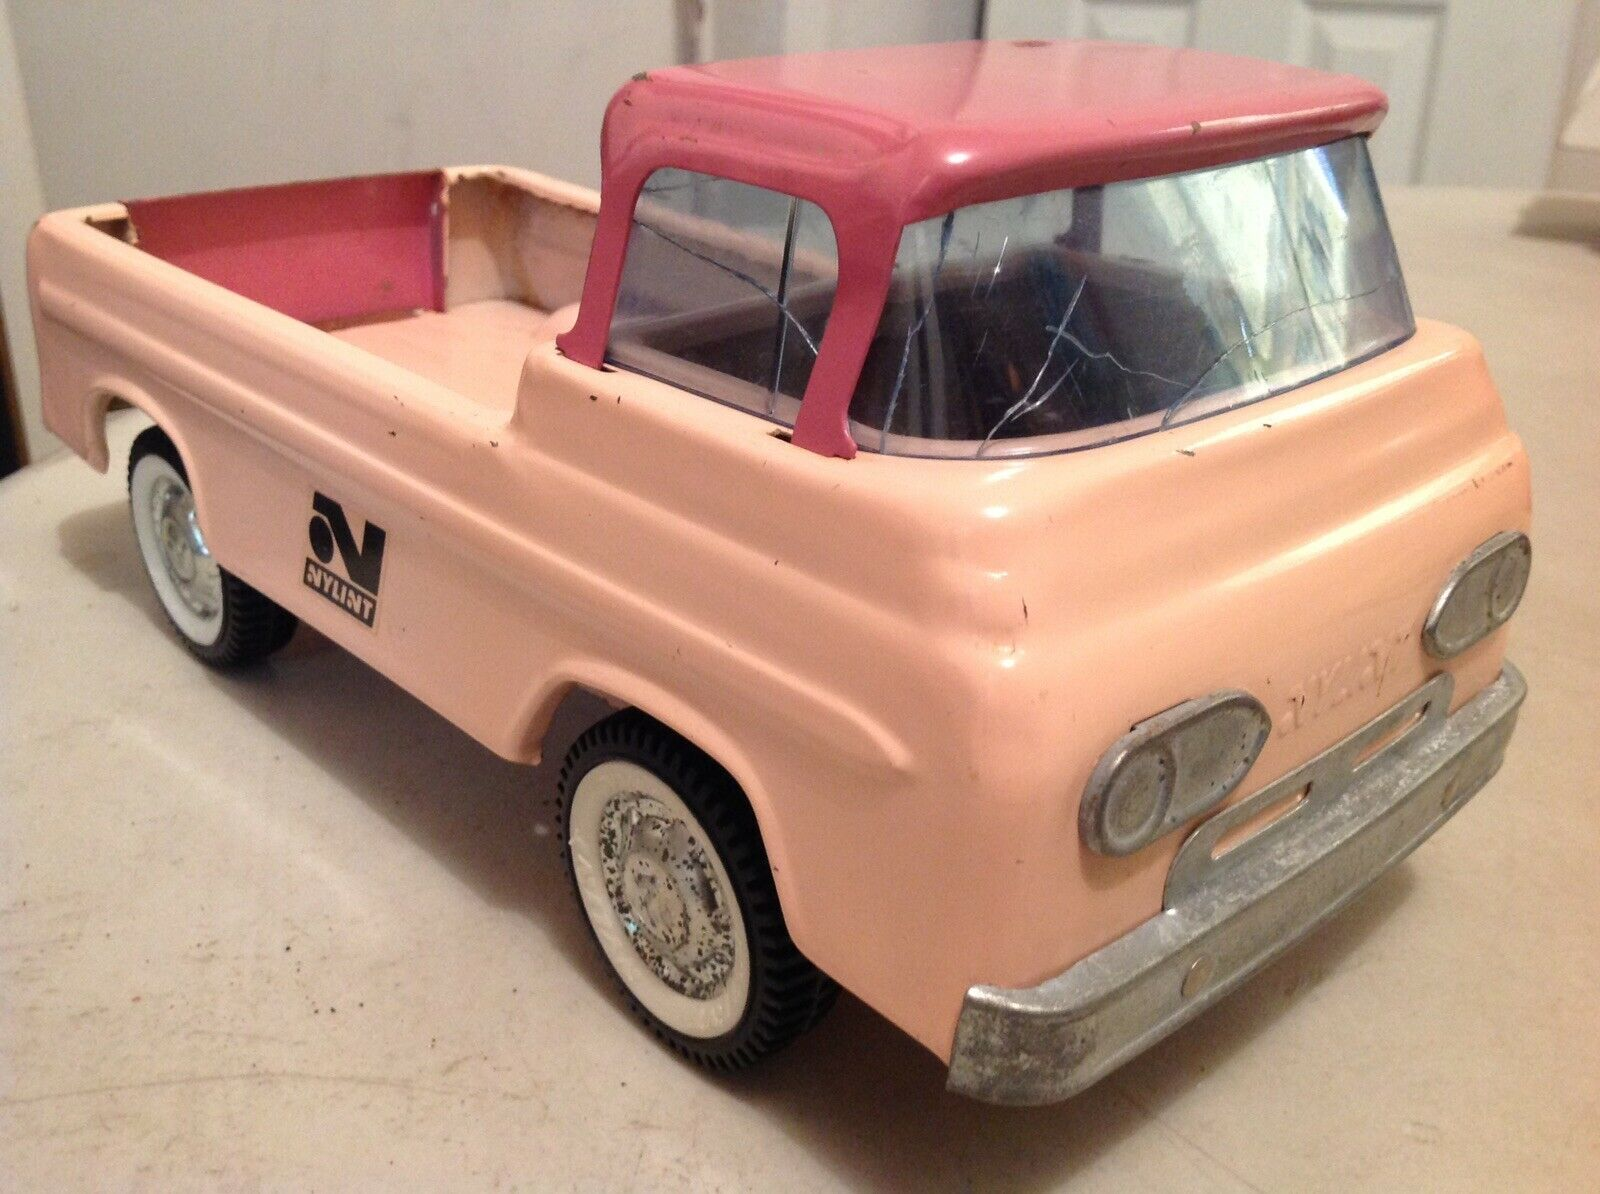 60's Nylint Nylint Nylint Ford Econoline Pink Version Pressed Steel a9c79d